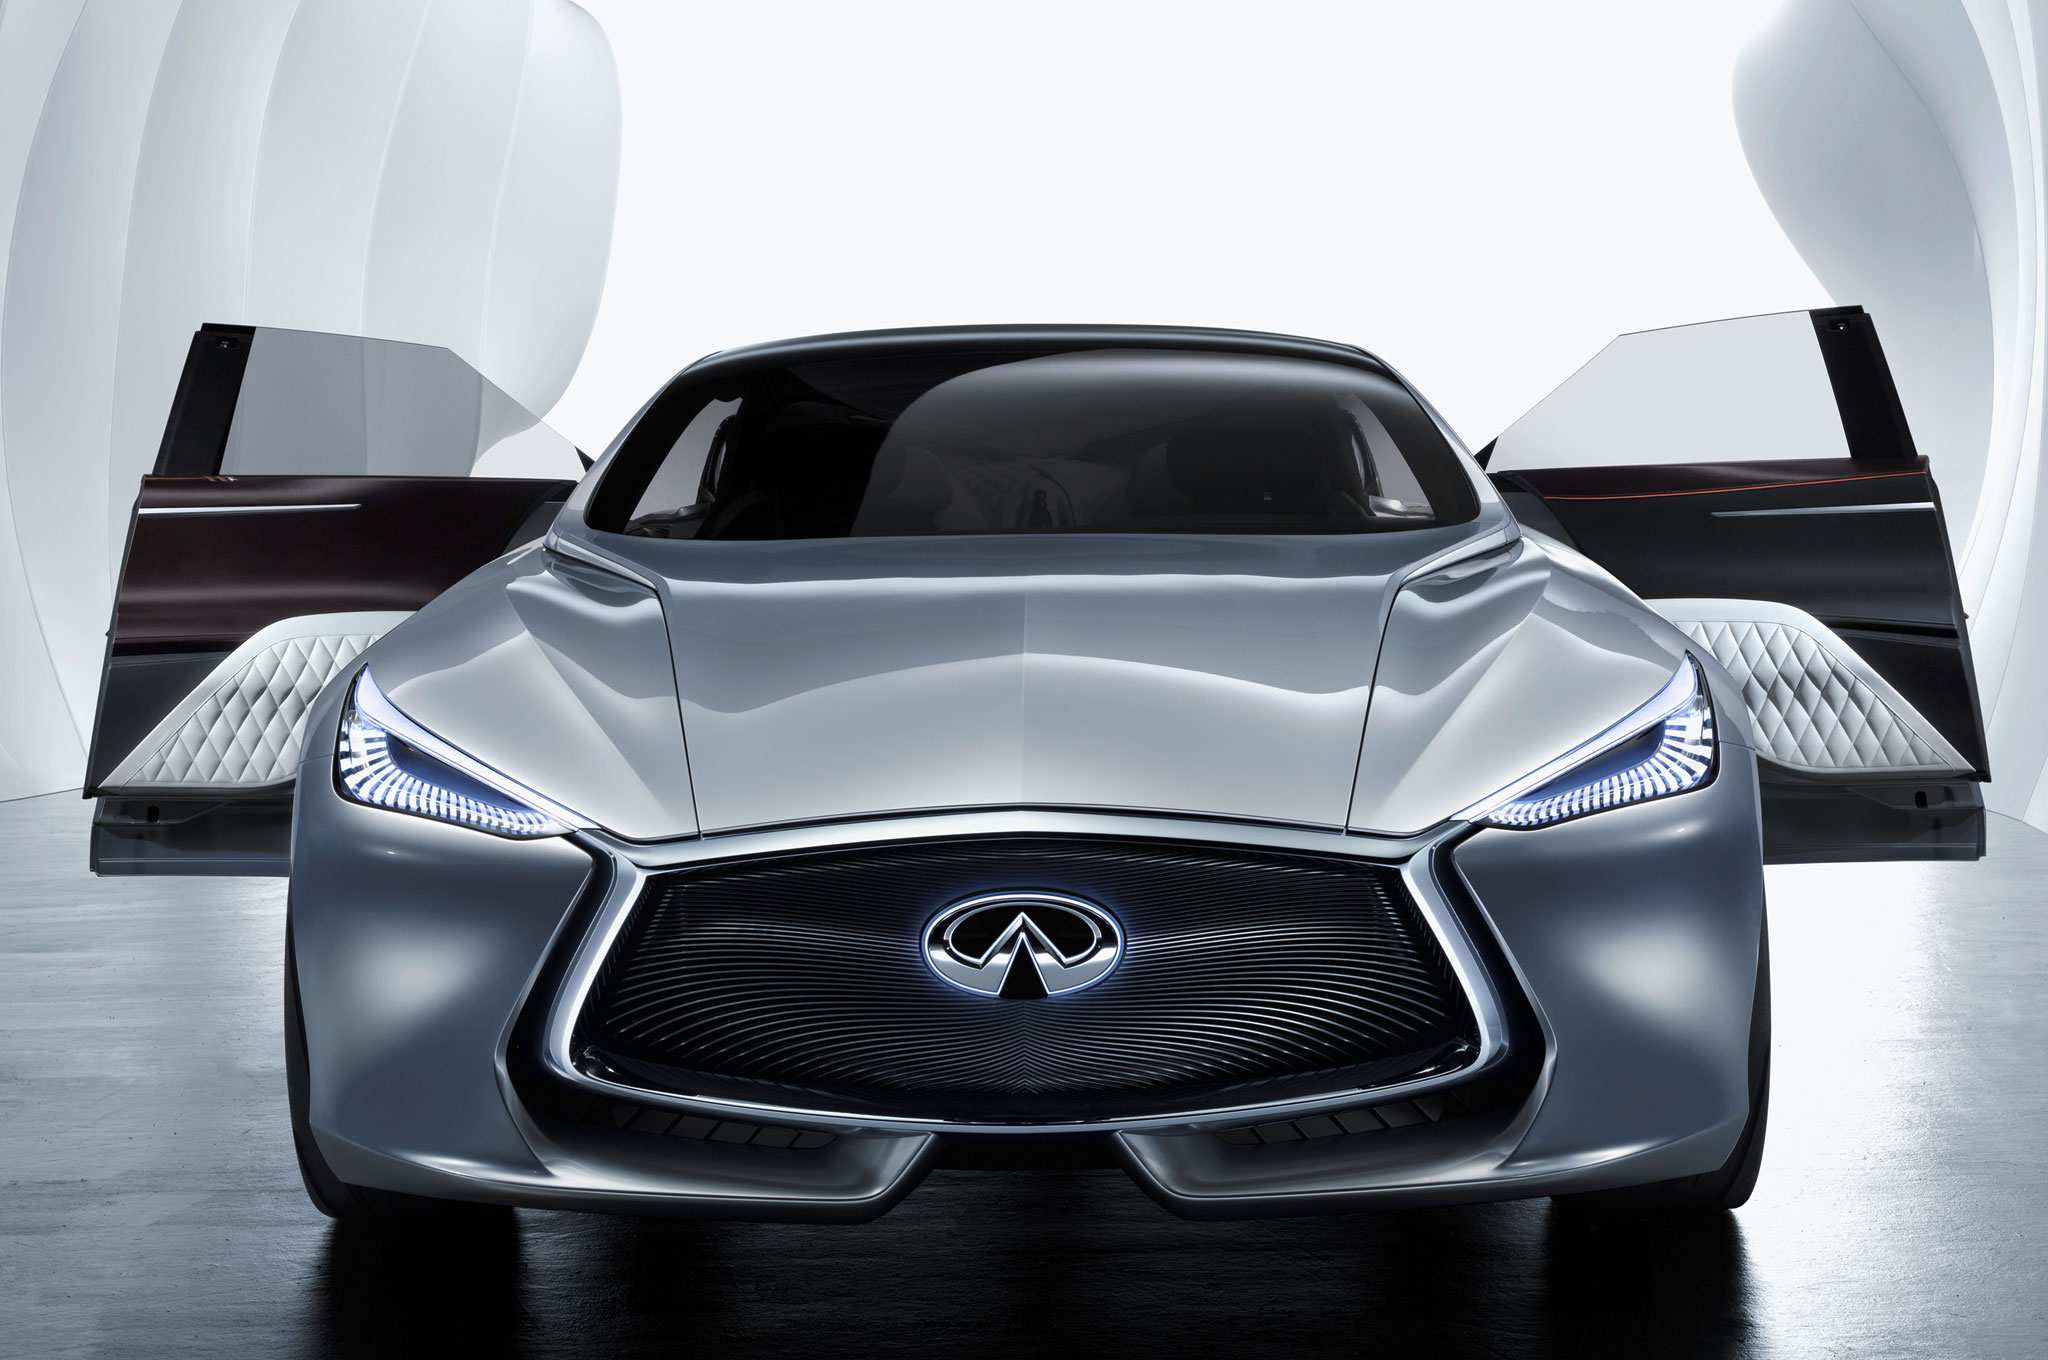 80 The Best Infiniti Cars For 2020 Speed Test